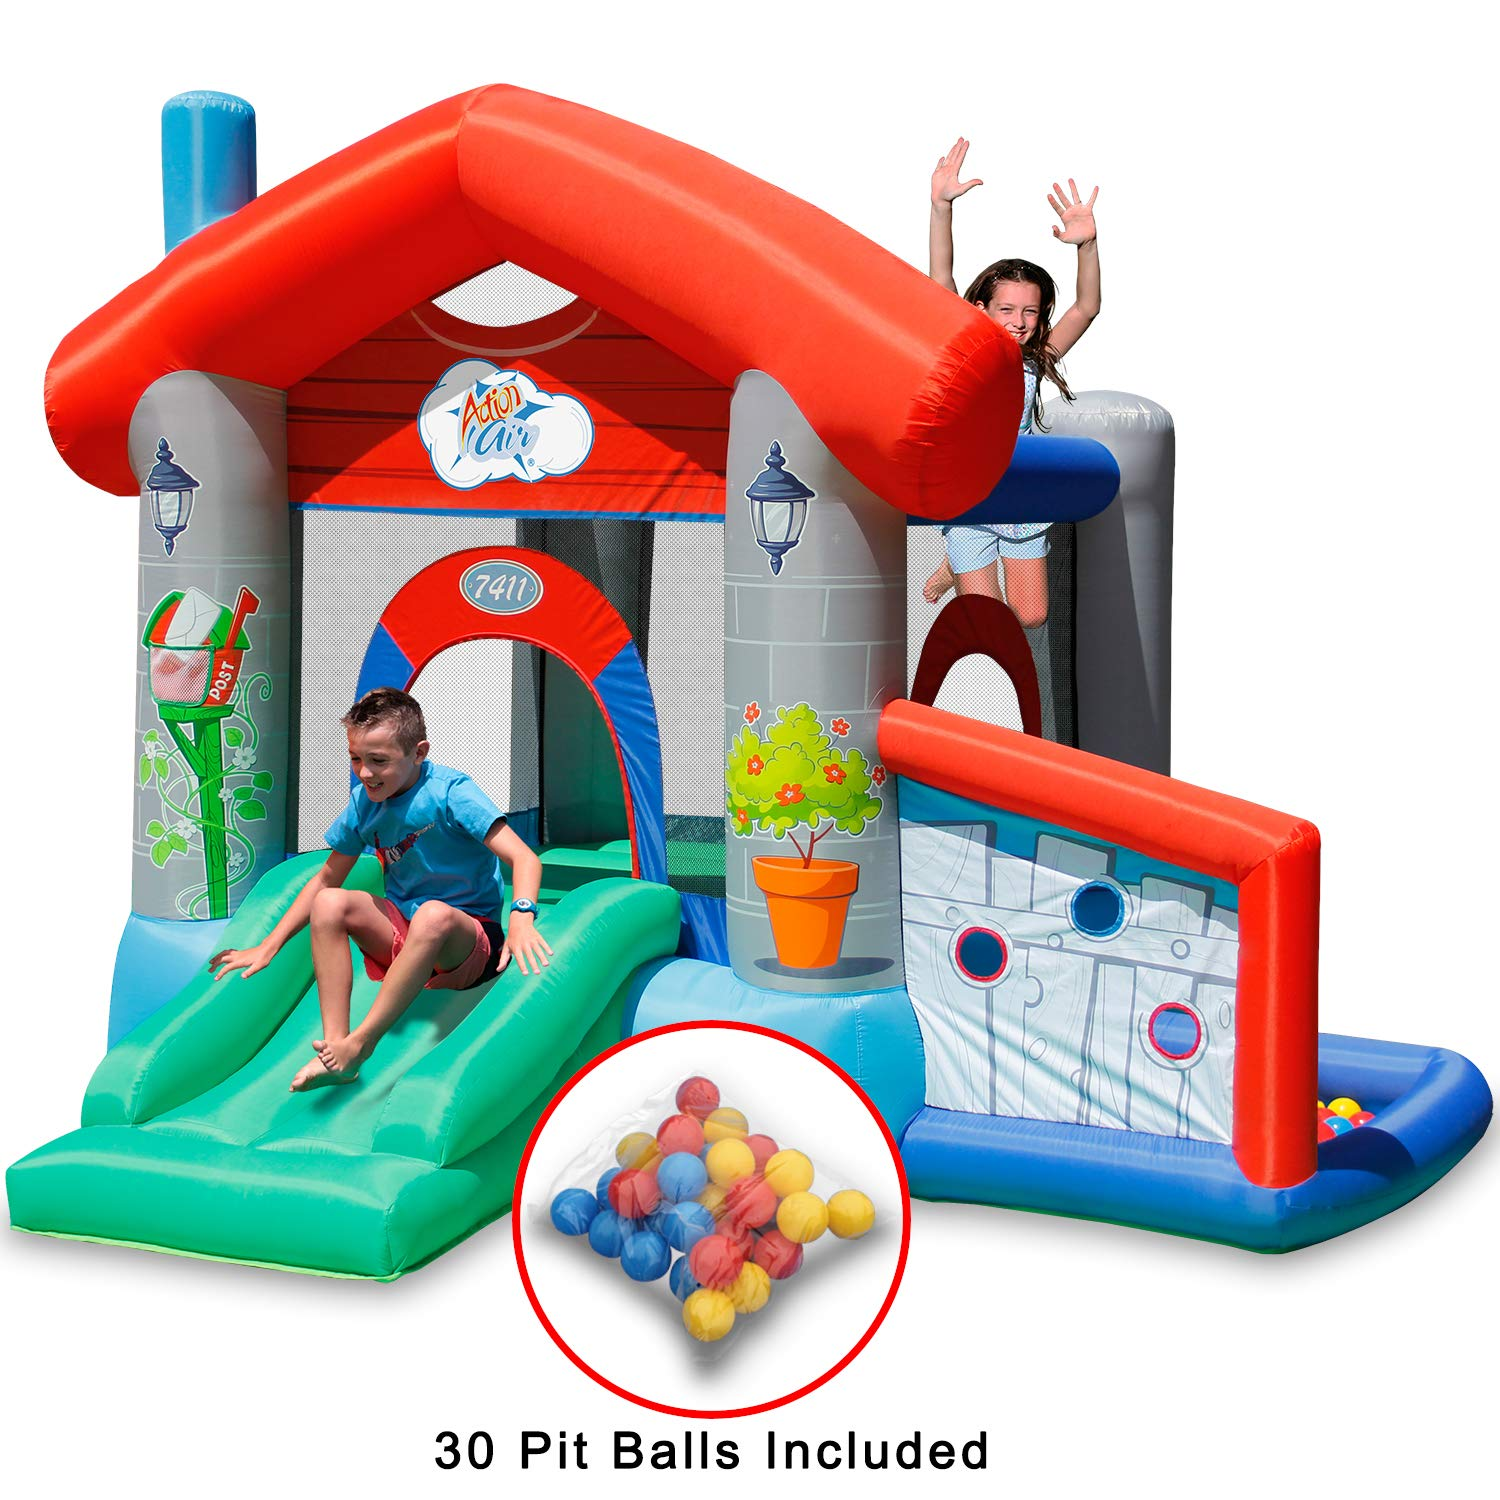 ACTION AIR Bounce House, Air Bouncer with 30 Ball, Inflatable Bouncer with Air Blower, Jumping Castle with Slide, for Outdoor and Indoor, Durable Sewn with Extra Thick Material, Idea for Kids by ACTION AIR (Image #1)